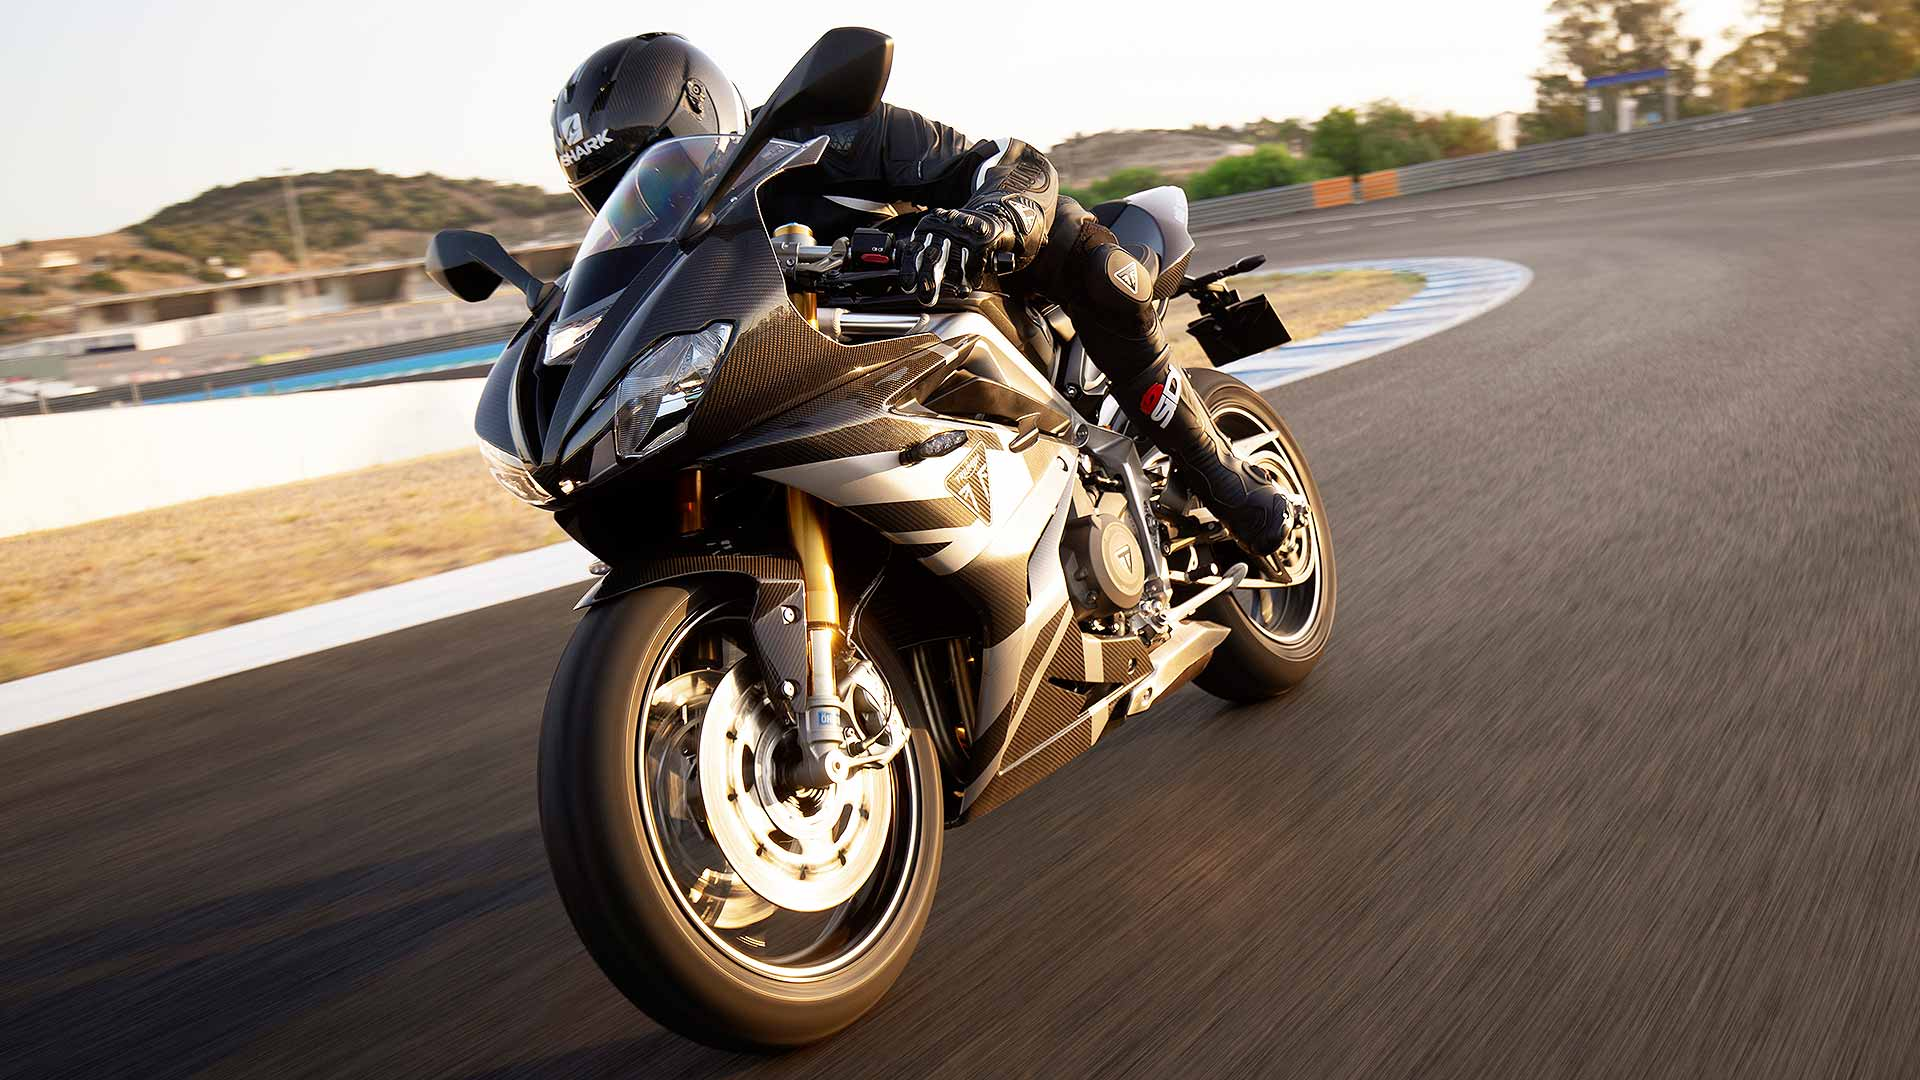 New Triumph Daytona 765 is a Moto2 racer for the road